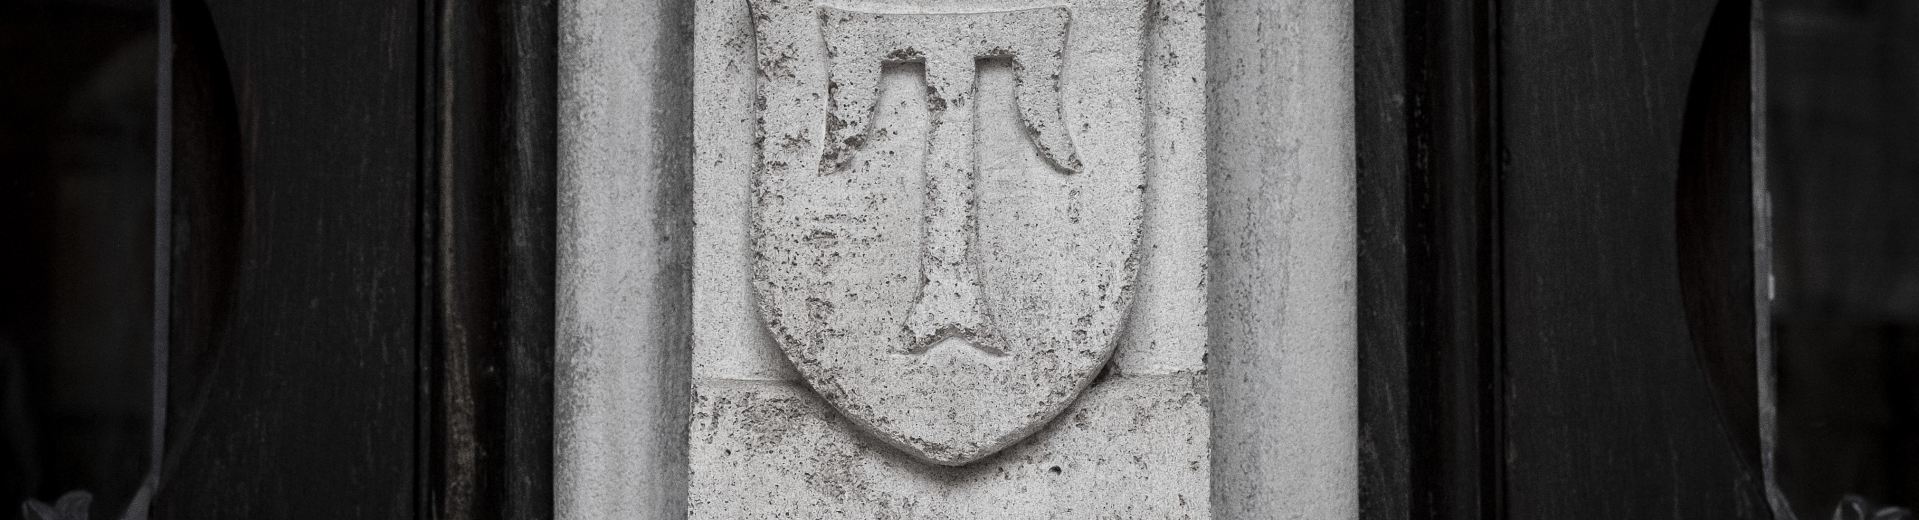 "Historic Temple ""T"" on a stone pillar at Temple University."